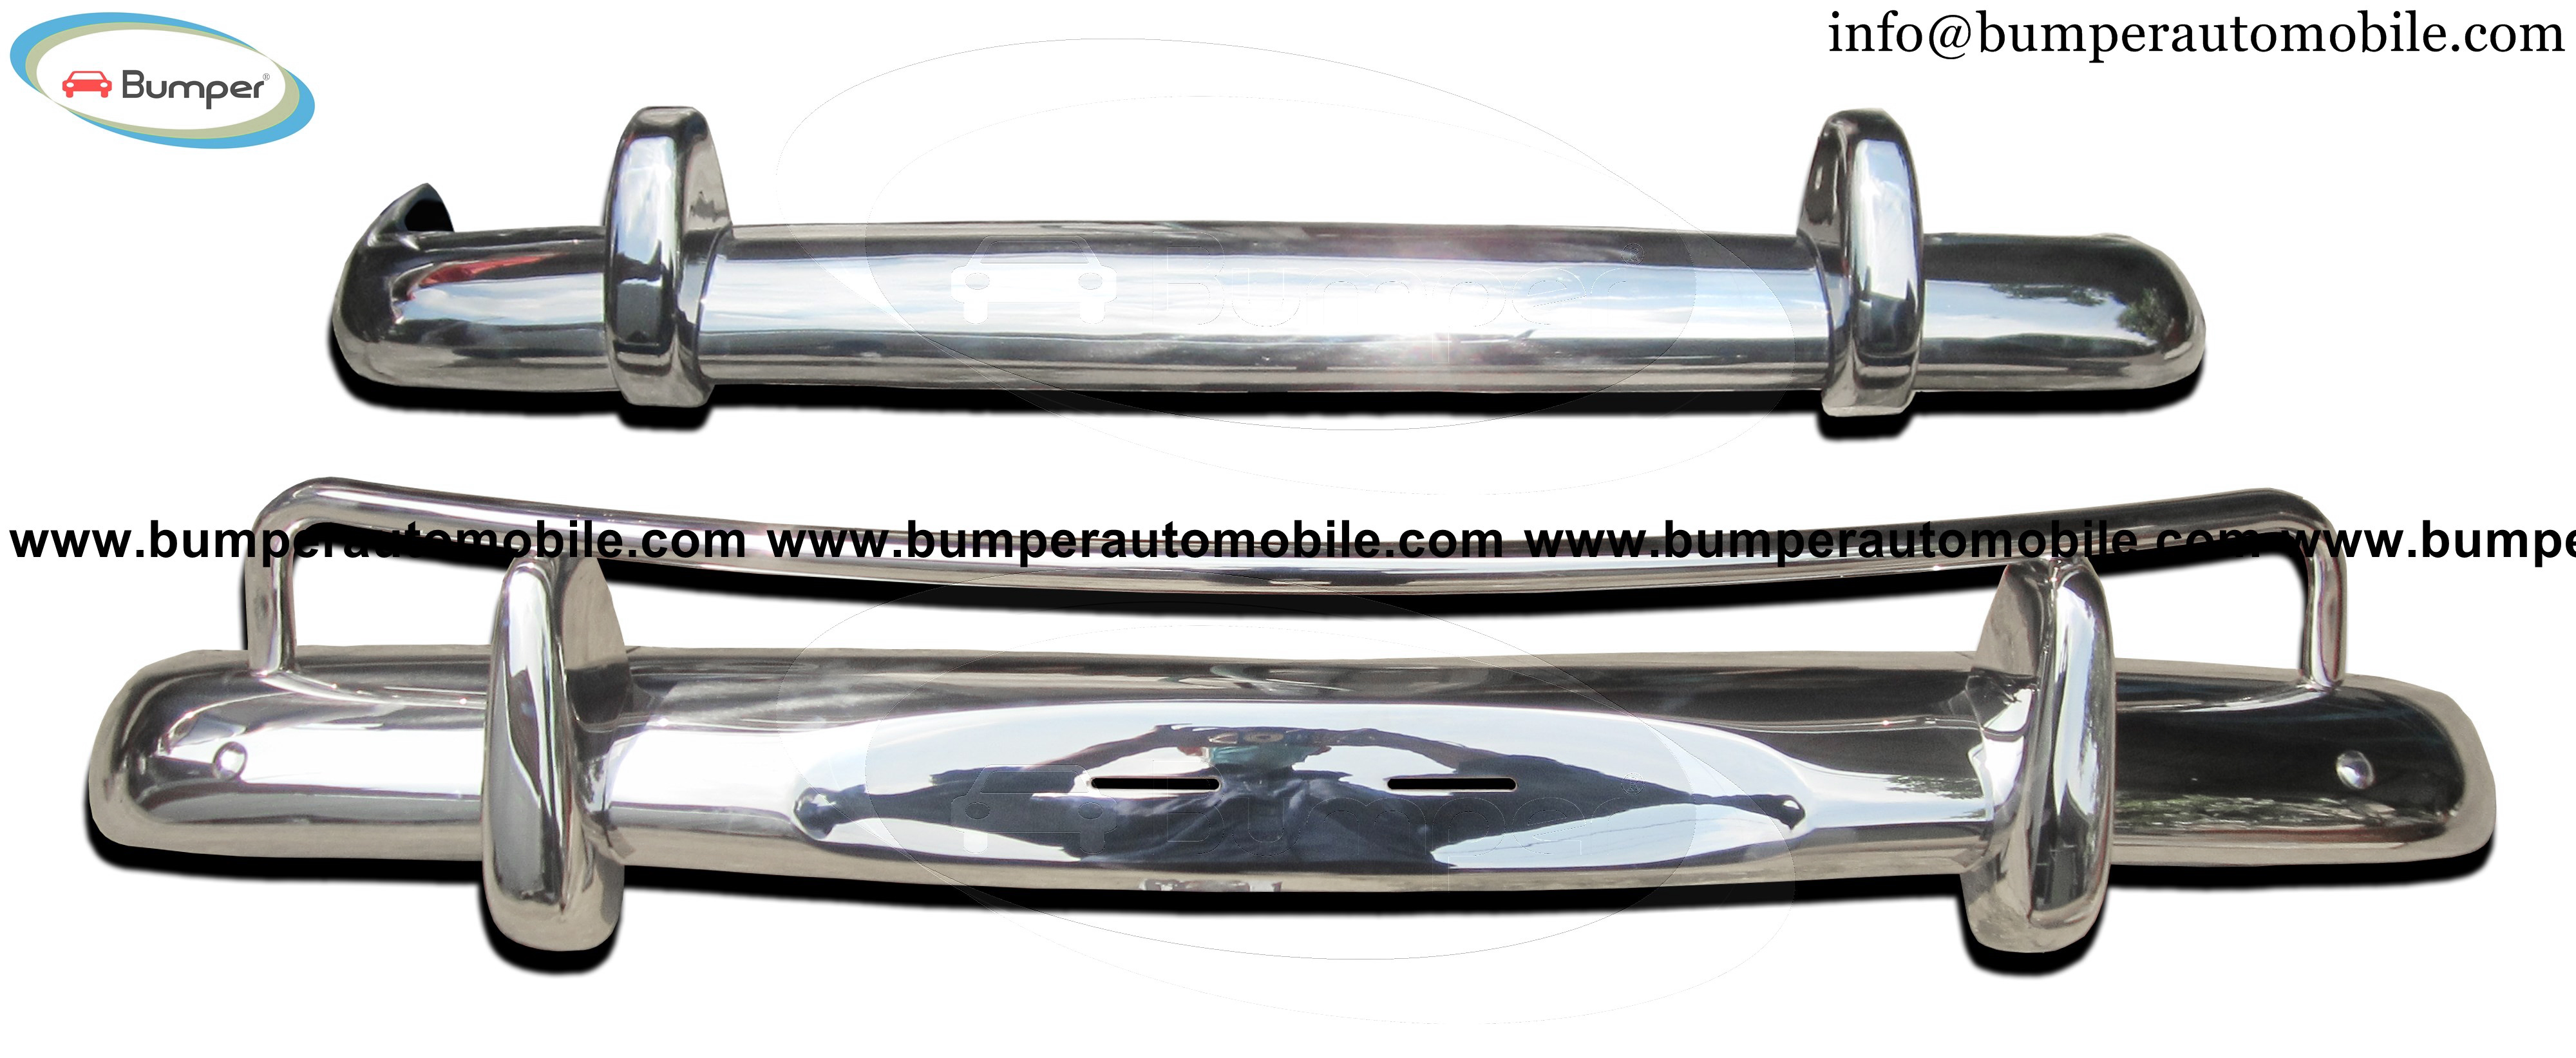 Volvo Amazon USA style (1956-1970) bumper stainless steel